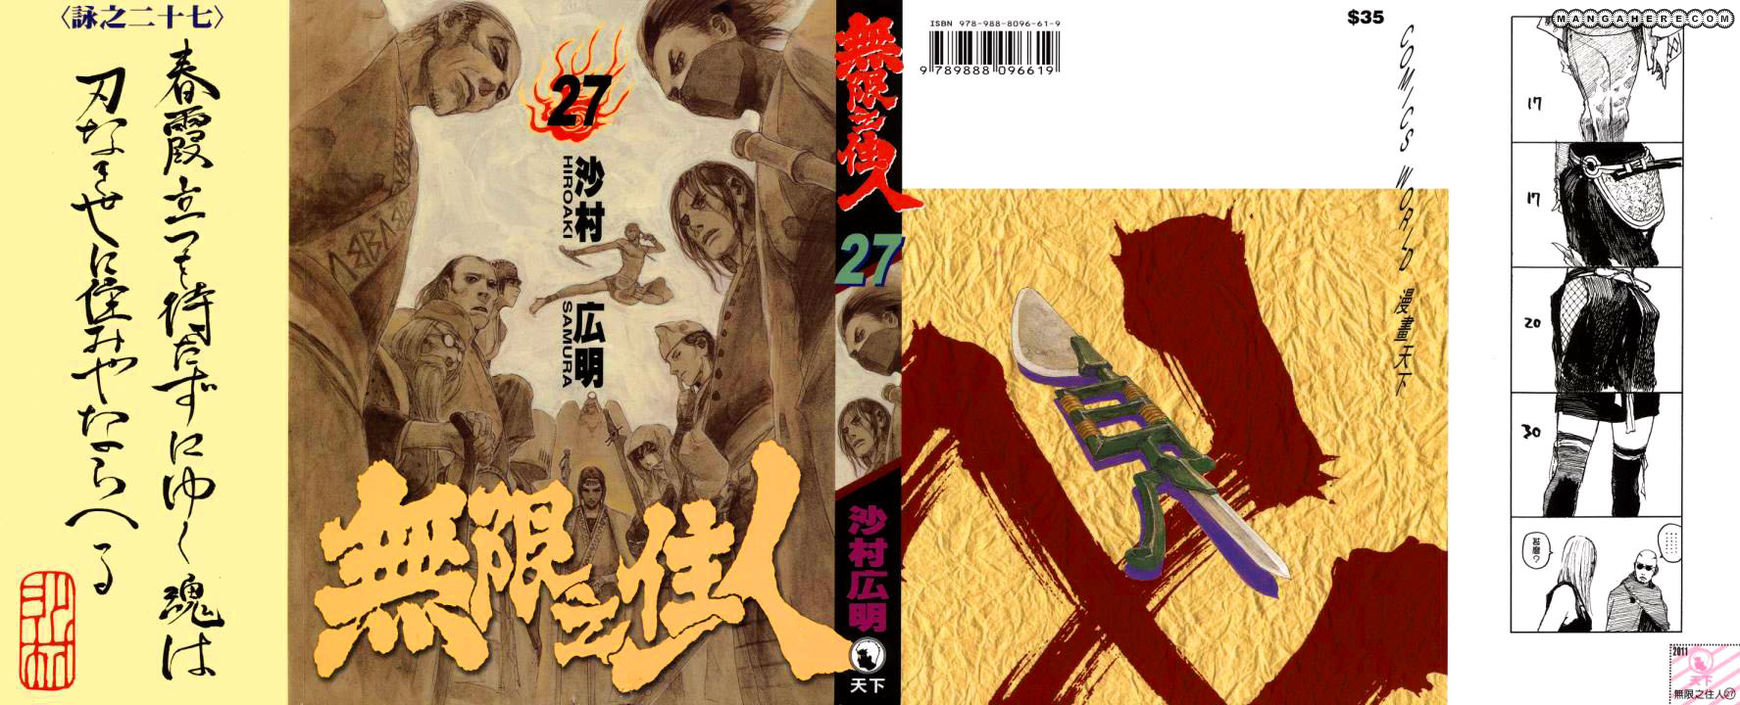 Blade of the Immortal 178 Page 1